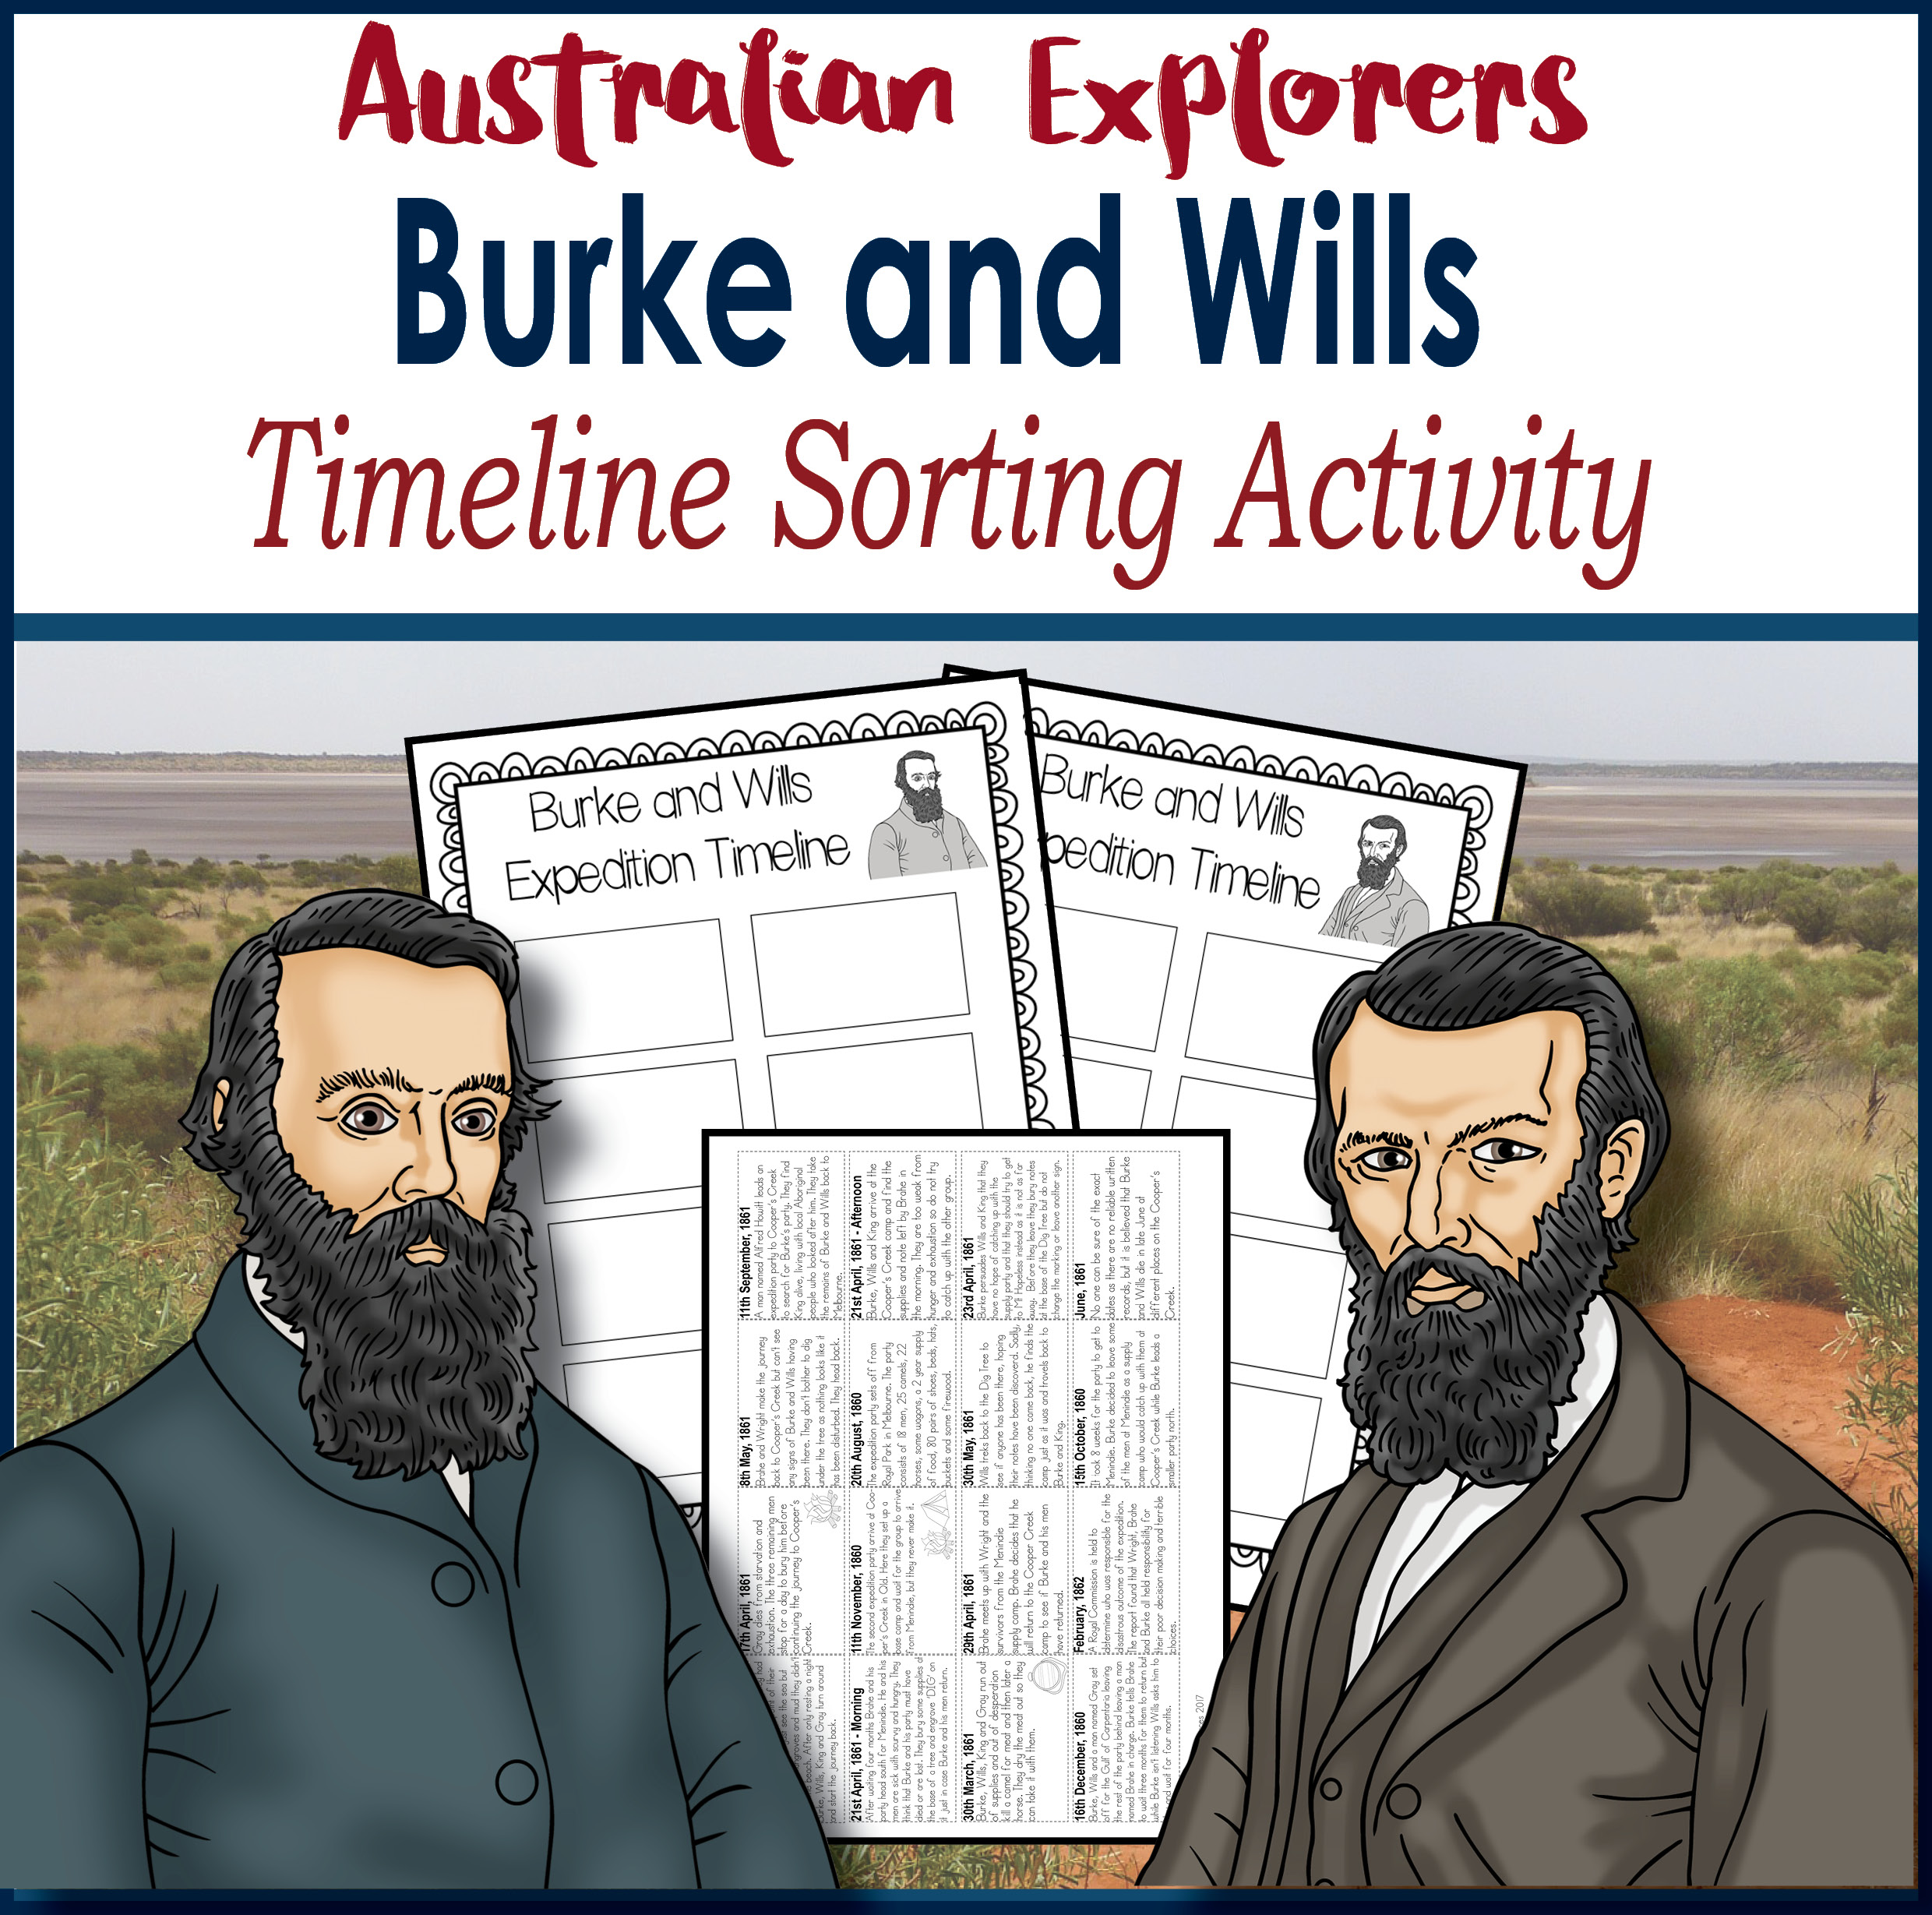 Burke and Wills timeline sorting activity cover